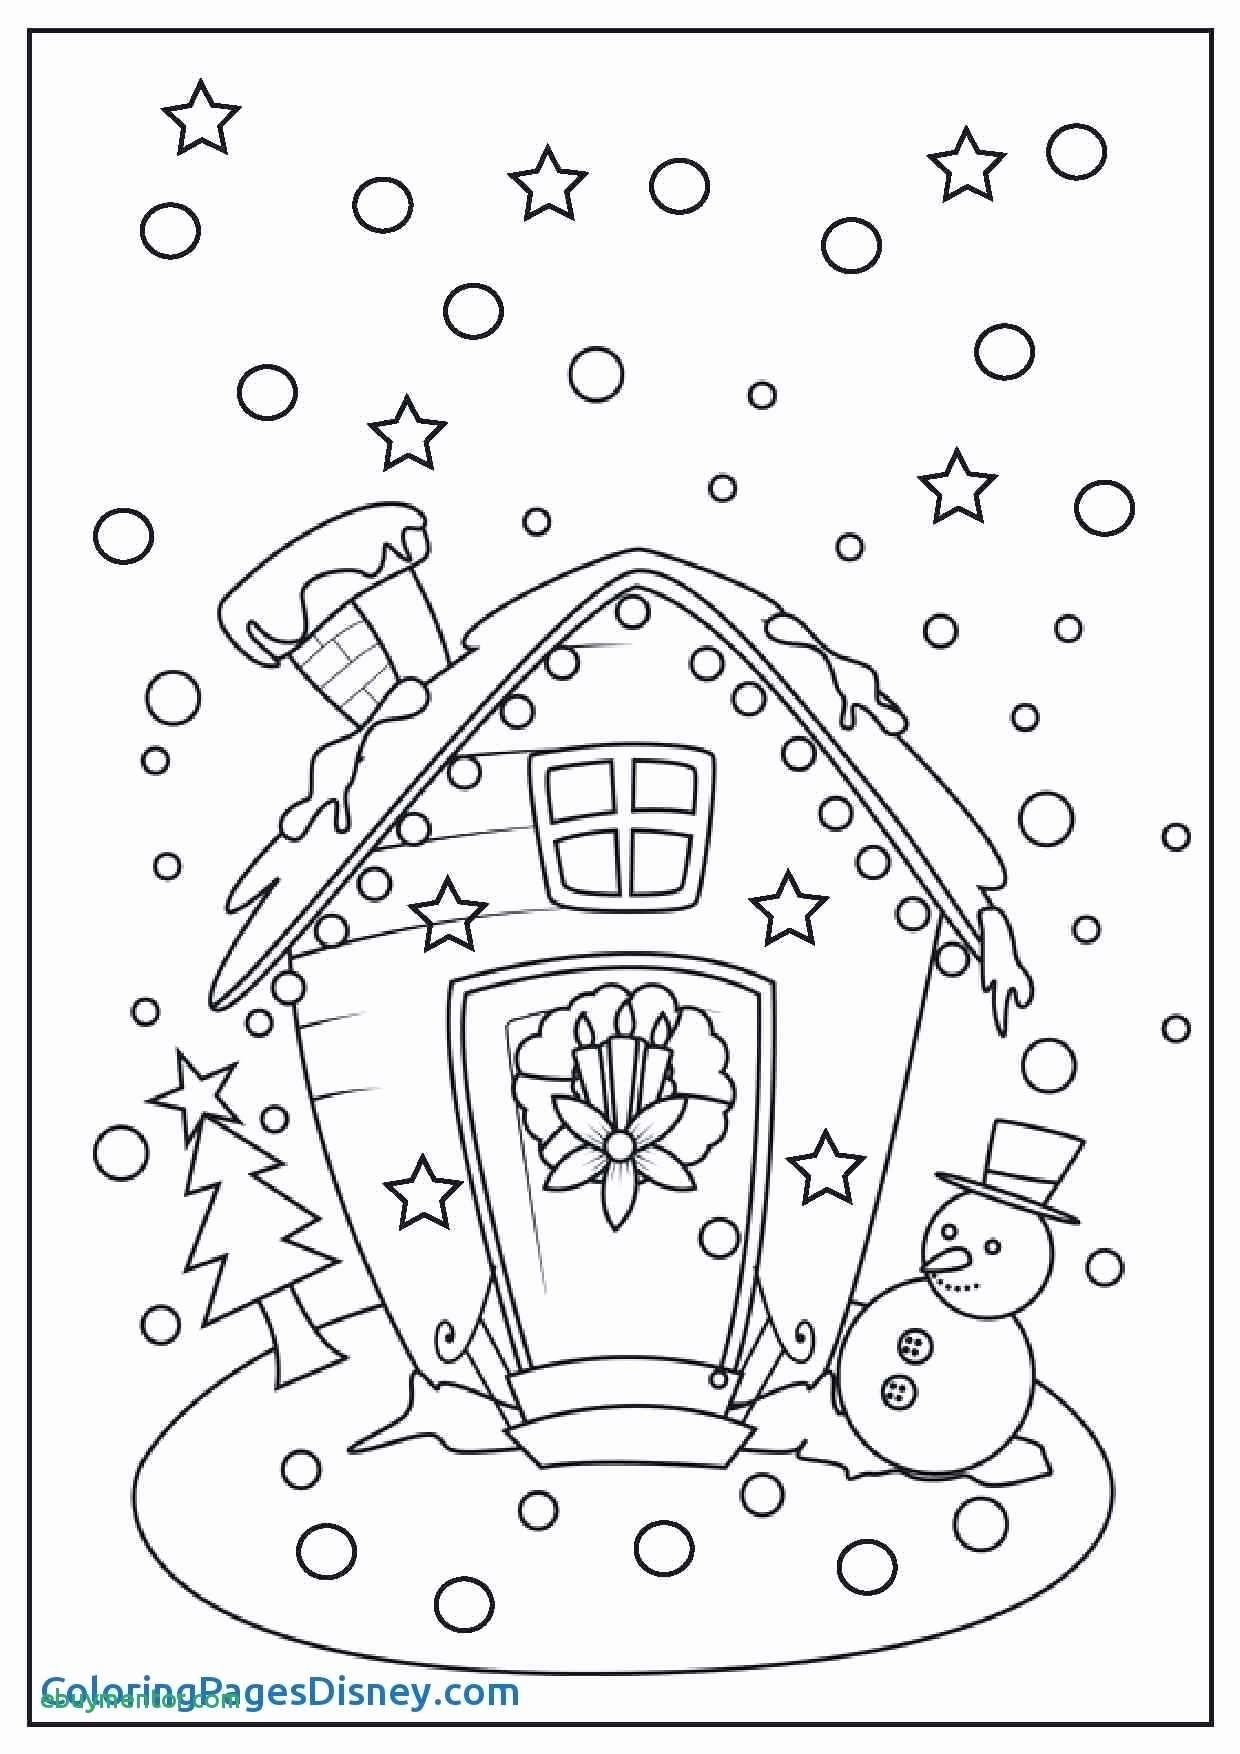 Oriental Trading Coloring Pages Oriental Trading Free Coloring Pages Lovely Printable Coloring Pages